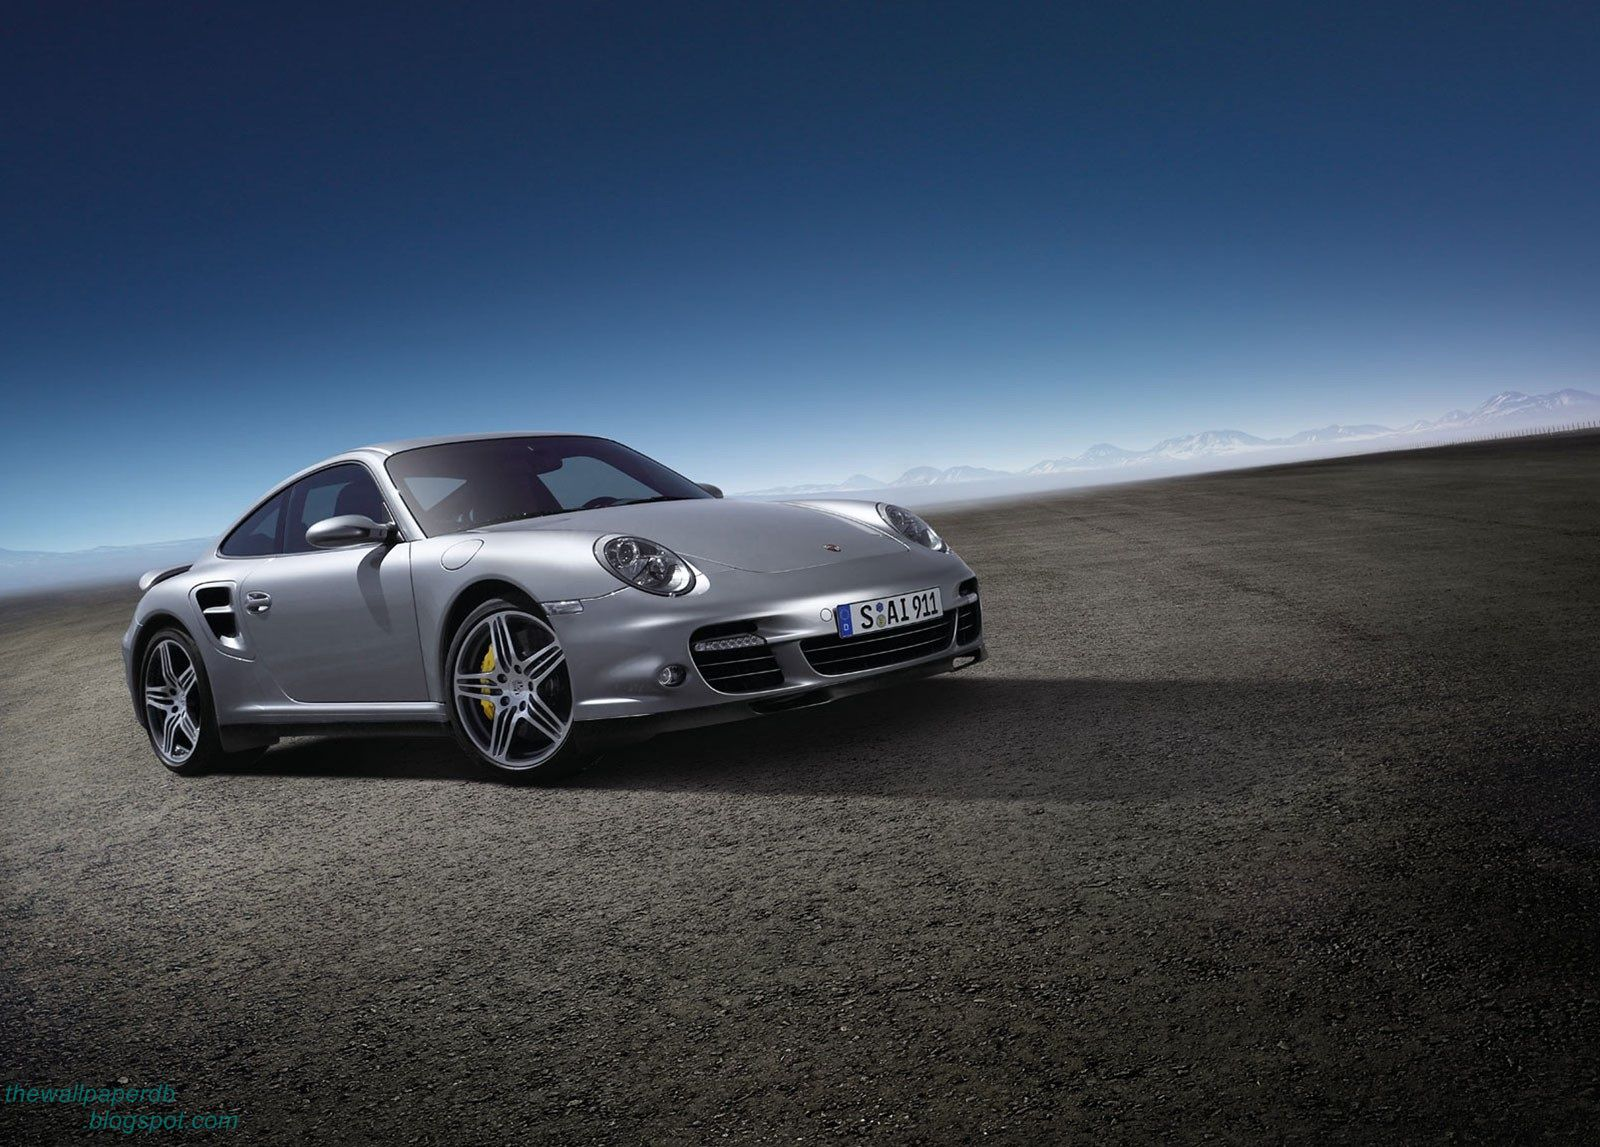 New supercar from porsche 911 turbo 4s 2012 download wallpapers 1600x1147